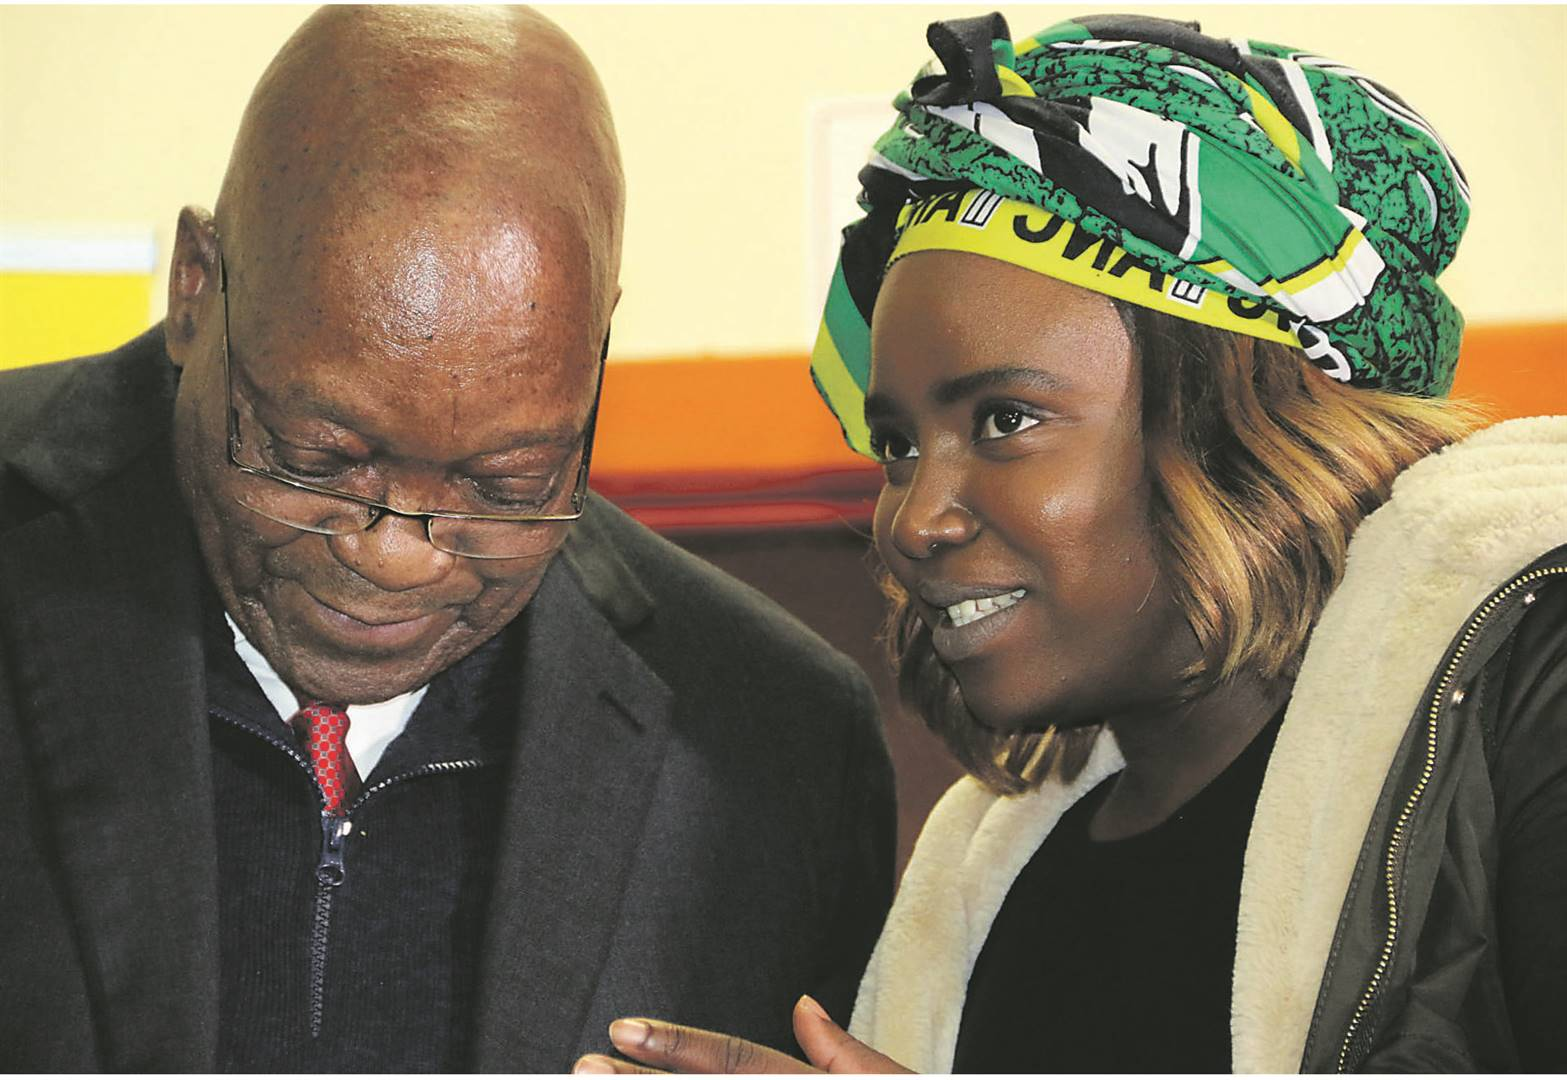 FAMILY AFFAIR Jacob Zuma with his daughter Thuthukile Zuma, one of the organisers of the dialogue on Thursday on the ANC Youth League's relevance in today's society, at which the former president was a keynote speaker. Picture: Palesa Dlamini